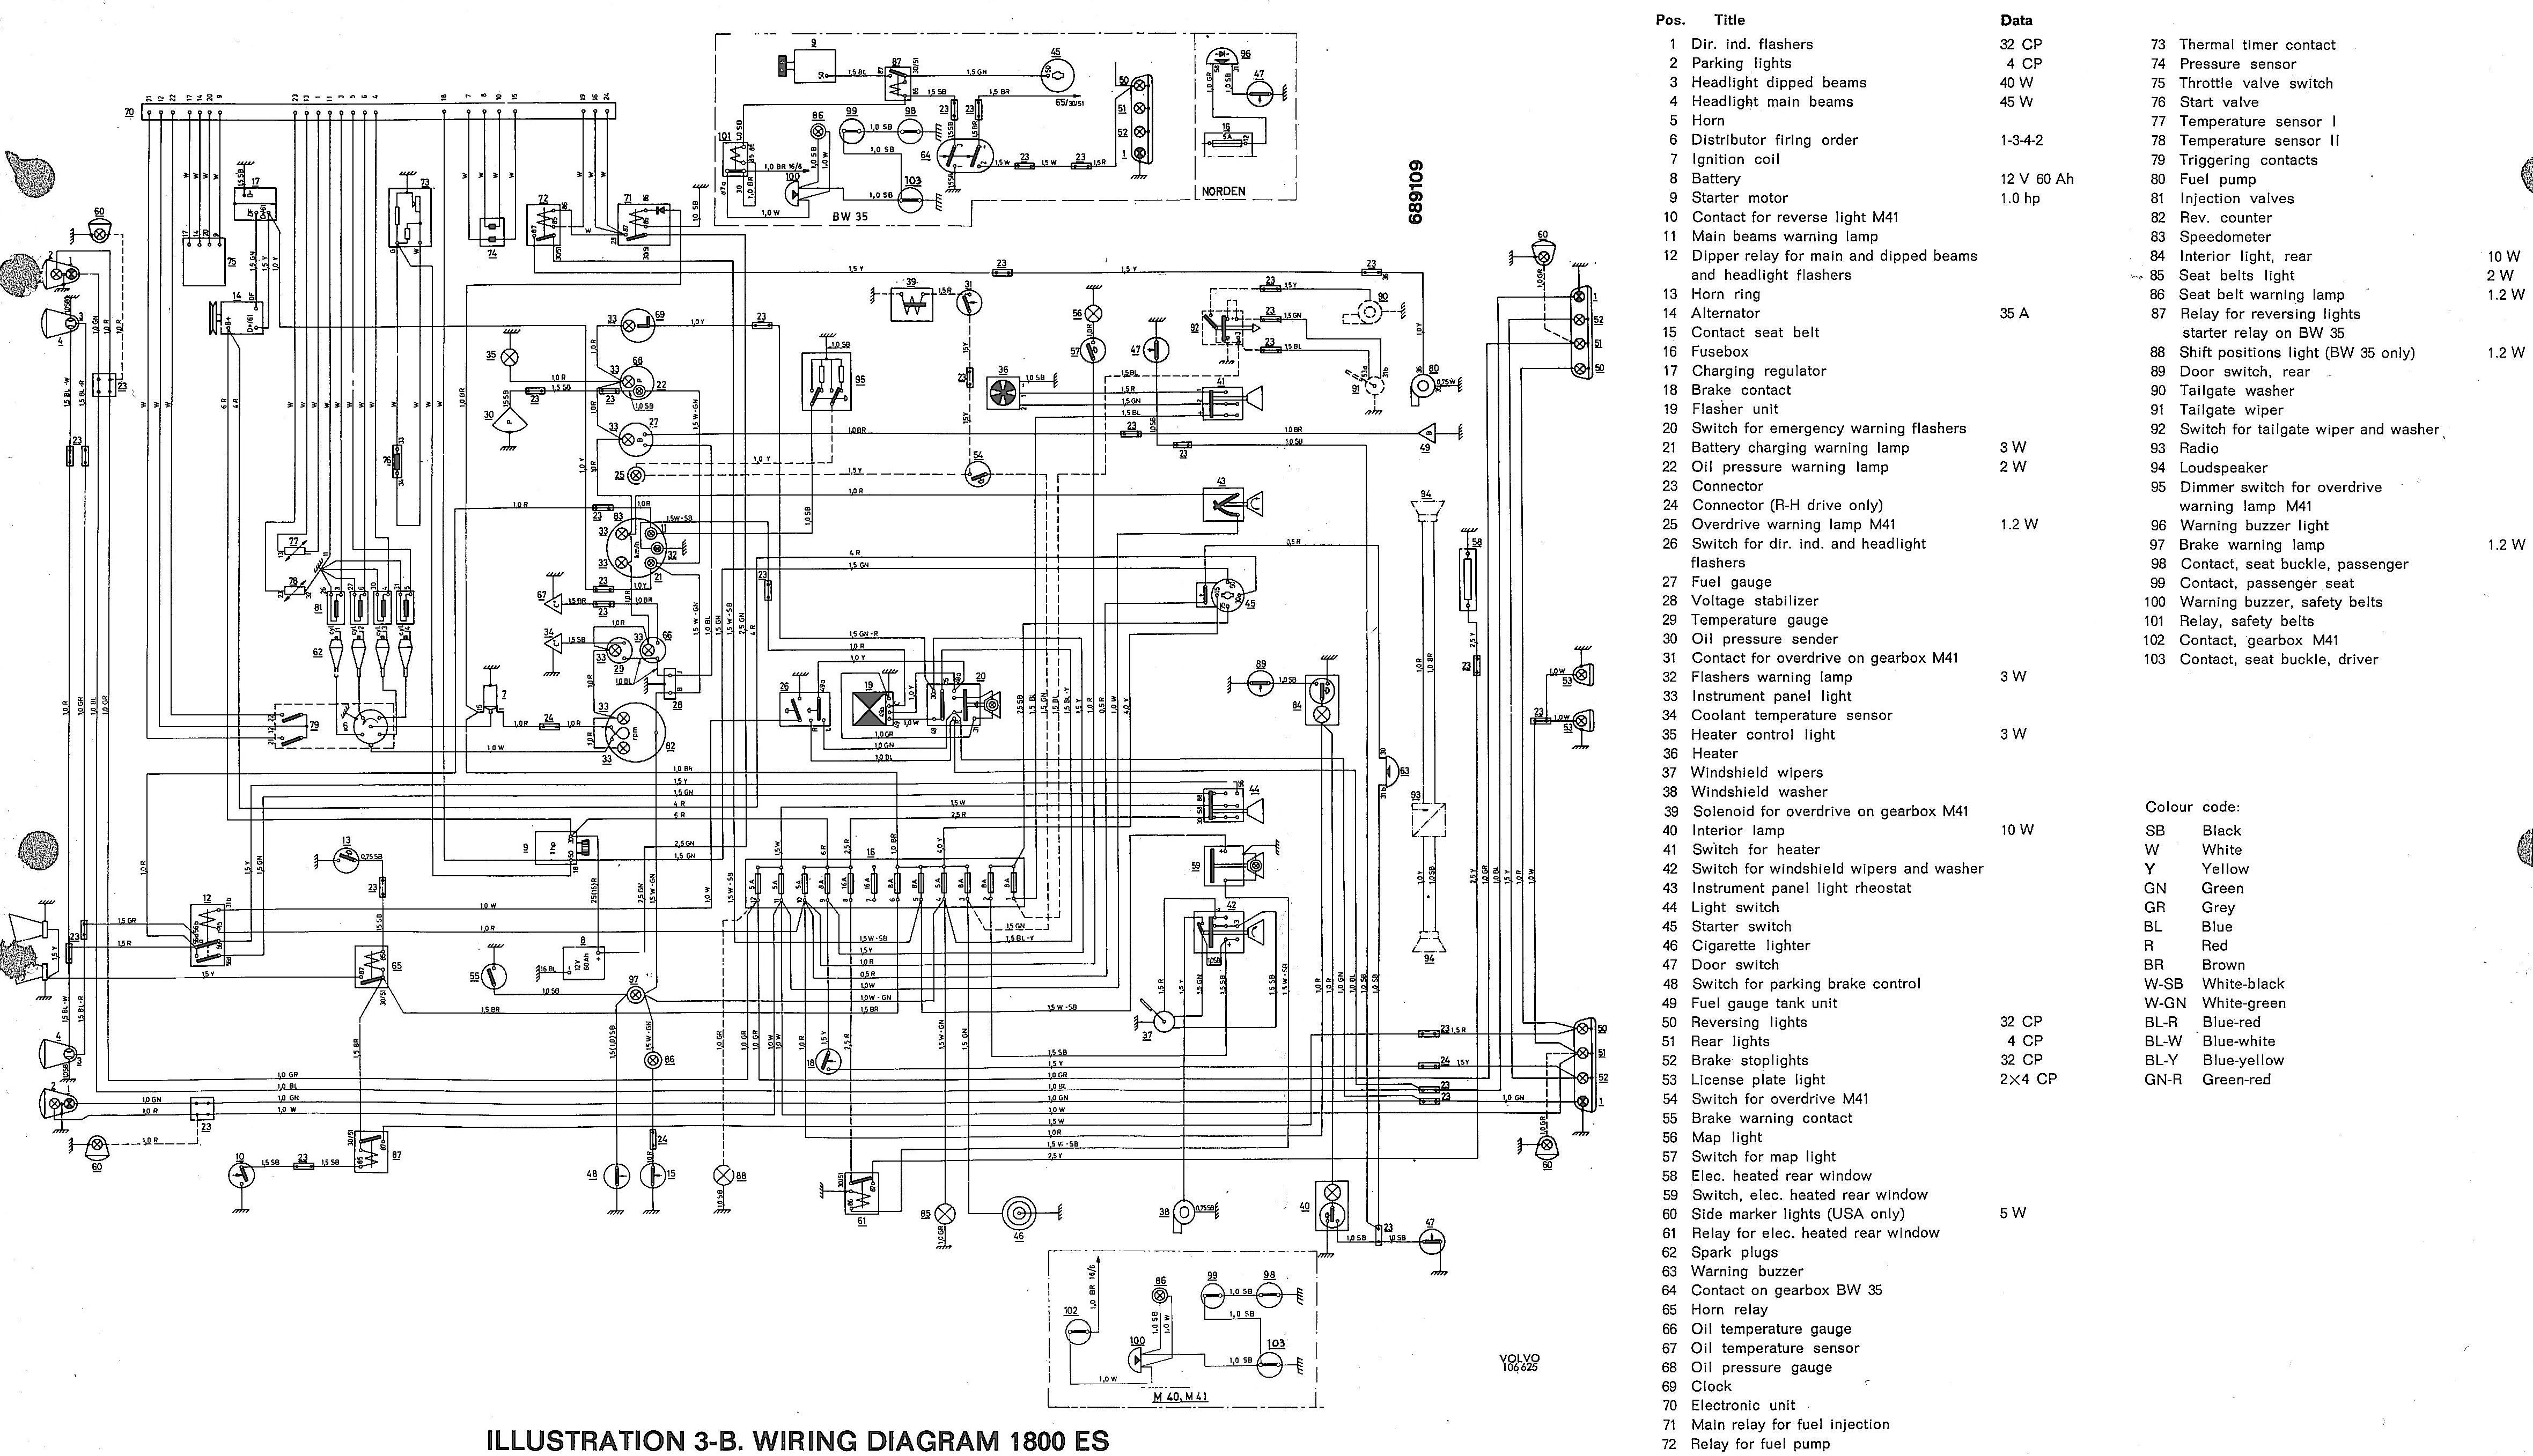 Volvo 850 Stereo Wiring Diagram Library Xc90 Free Vehicle Diagrams Source 1972 E Es